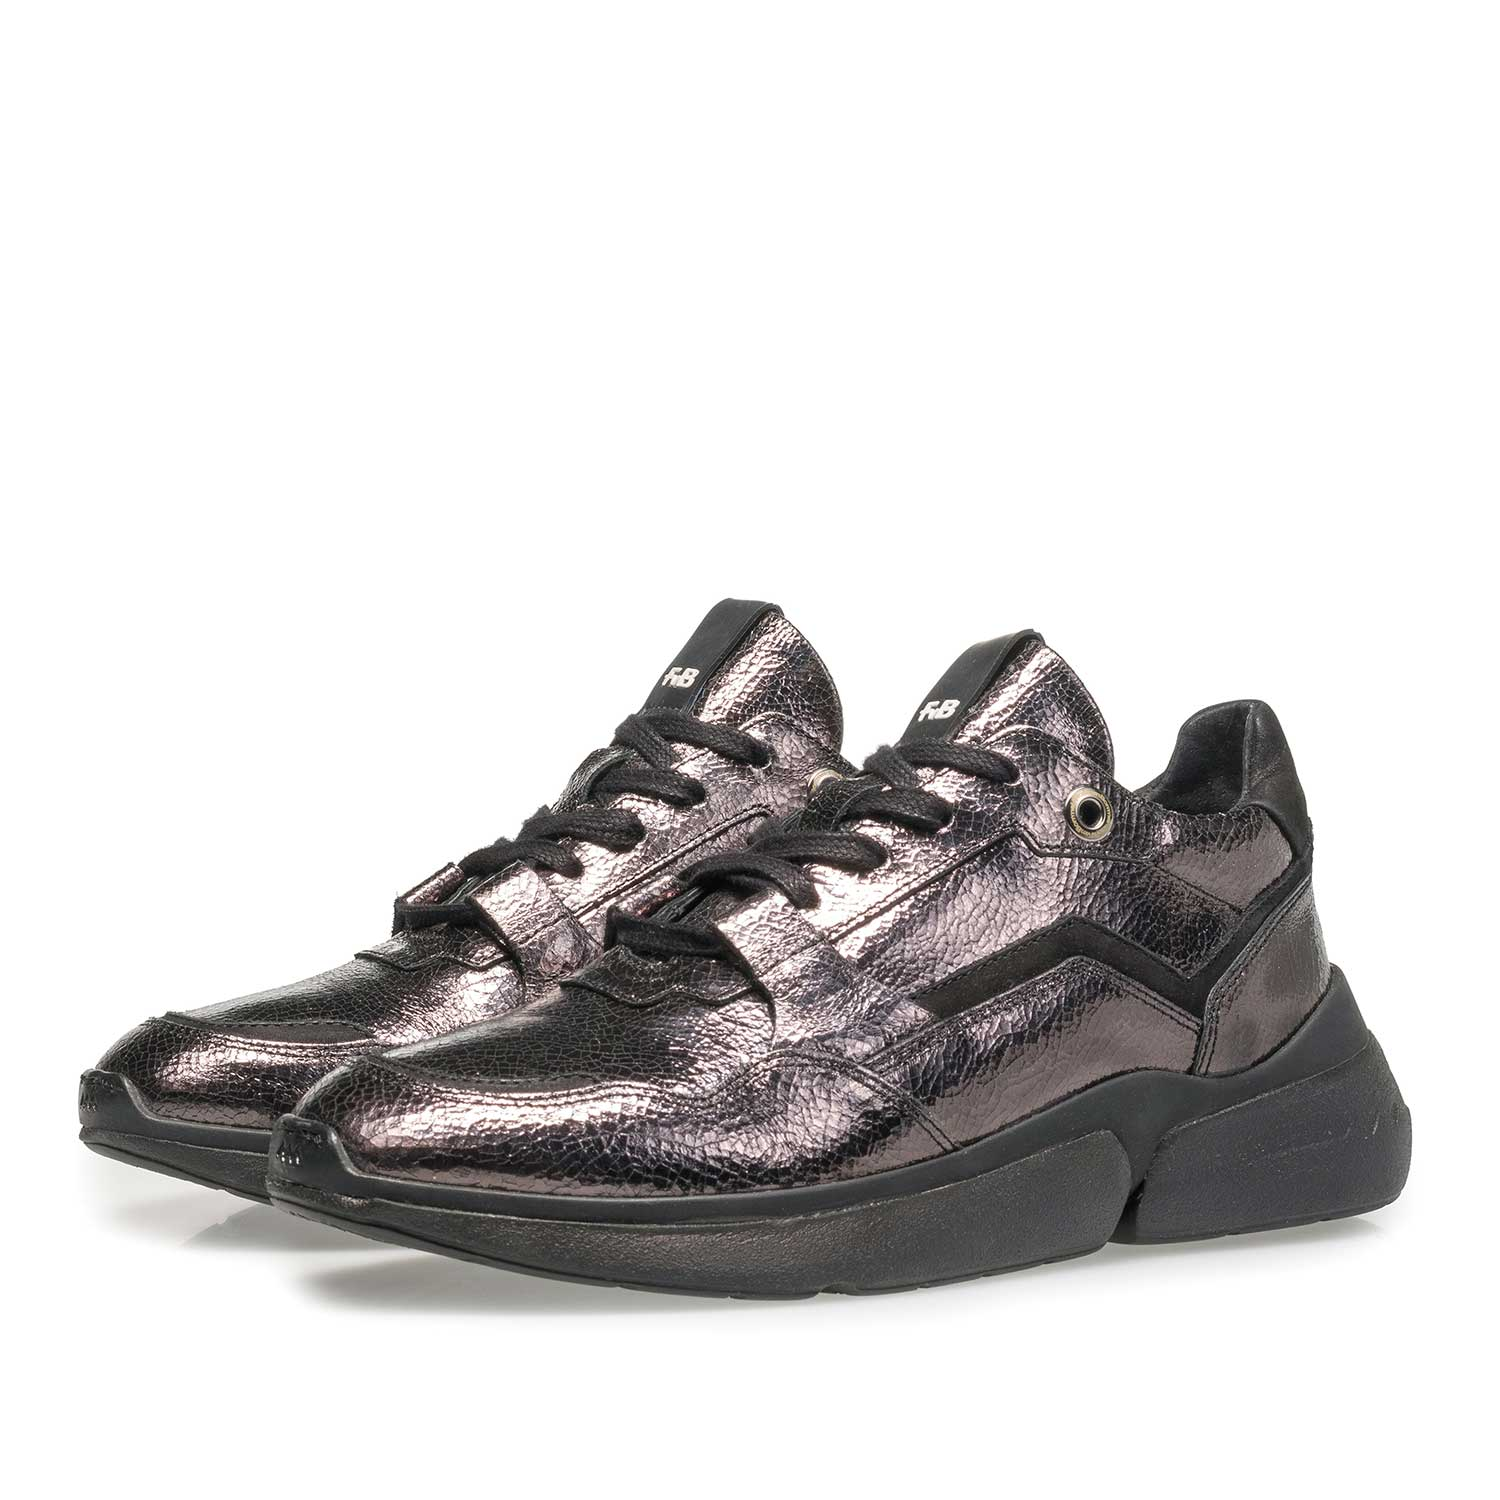 85291/07 - Dark grey leather sneaker with metallic print